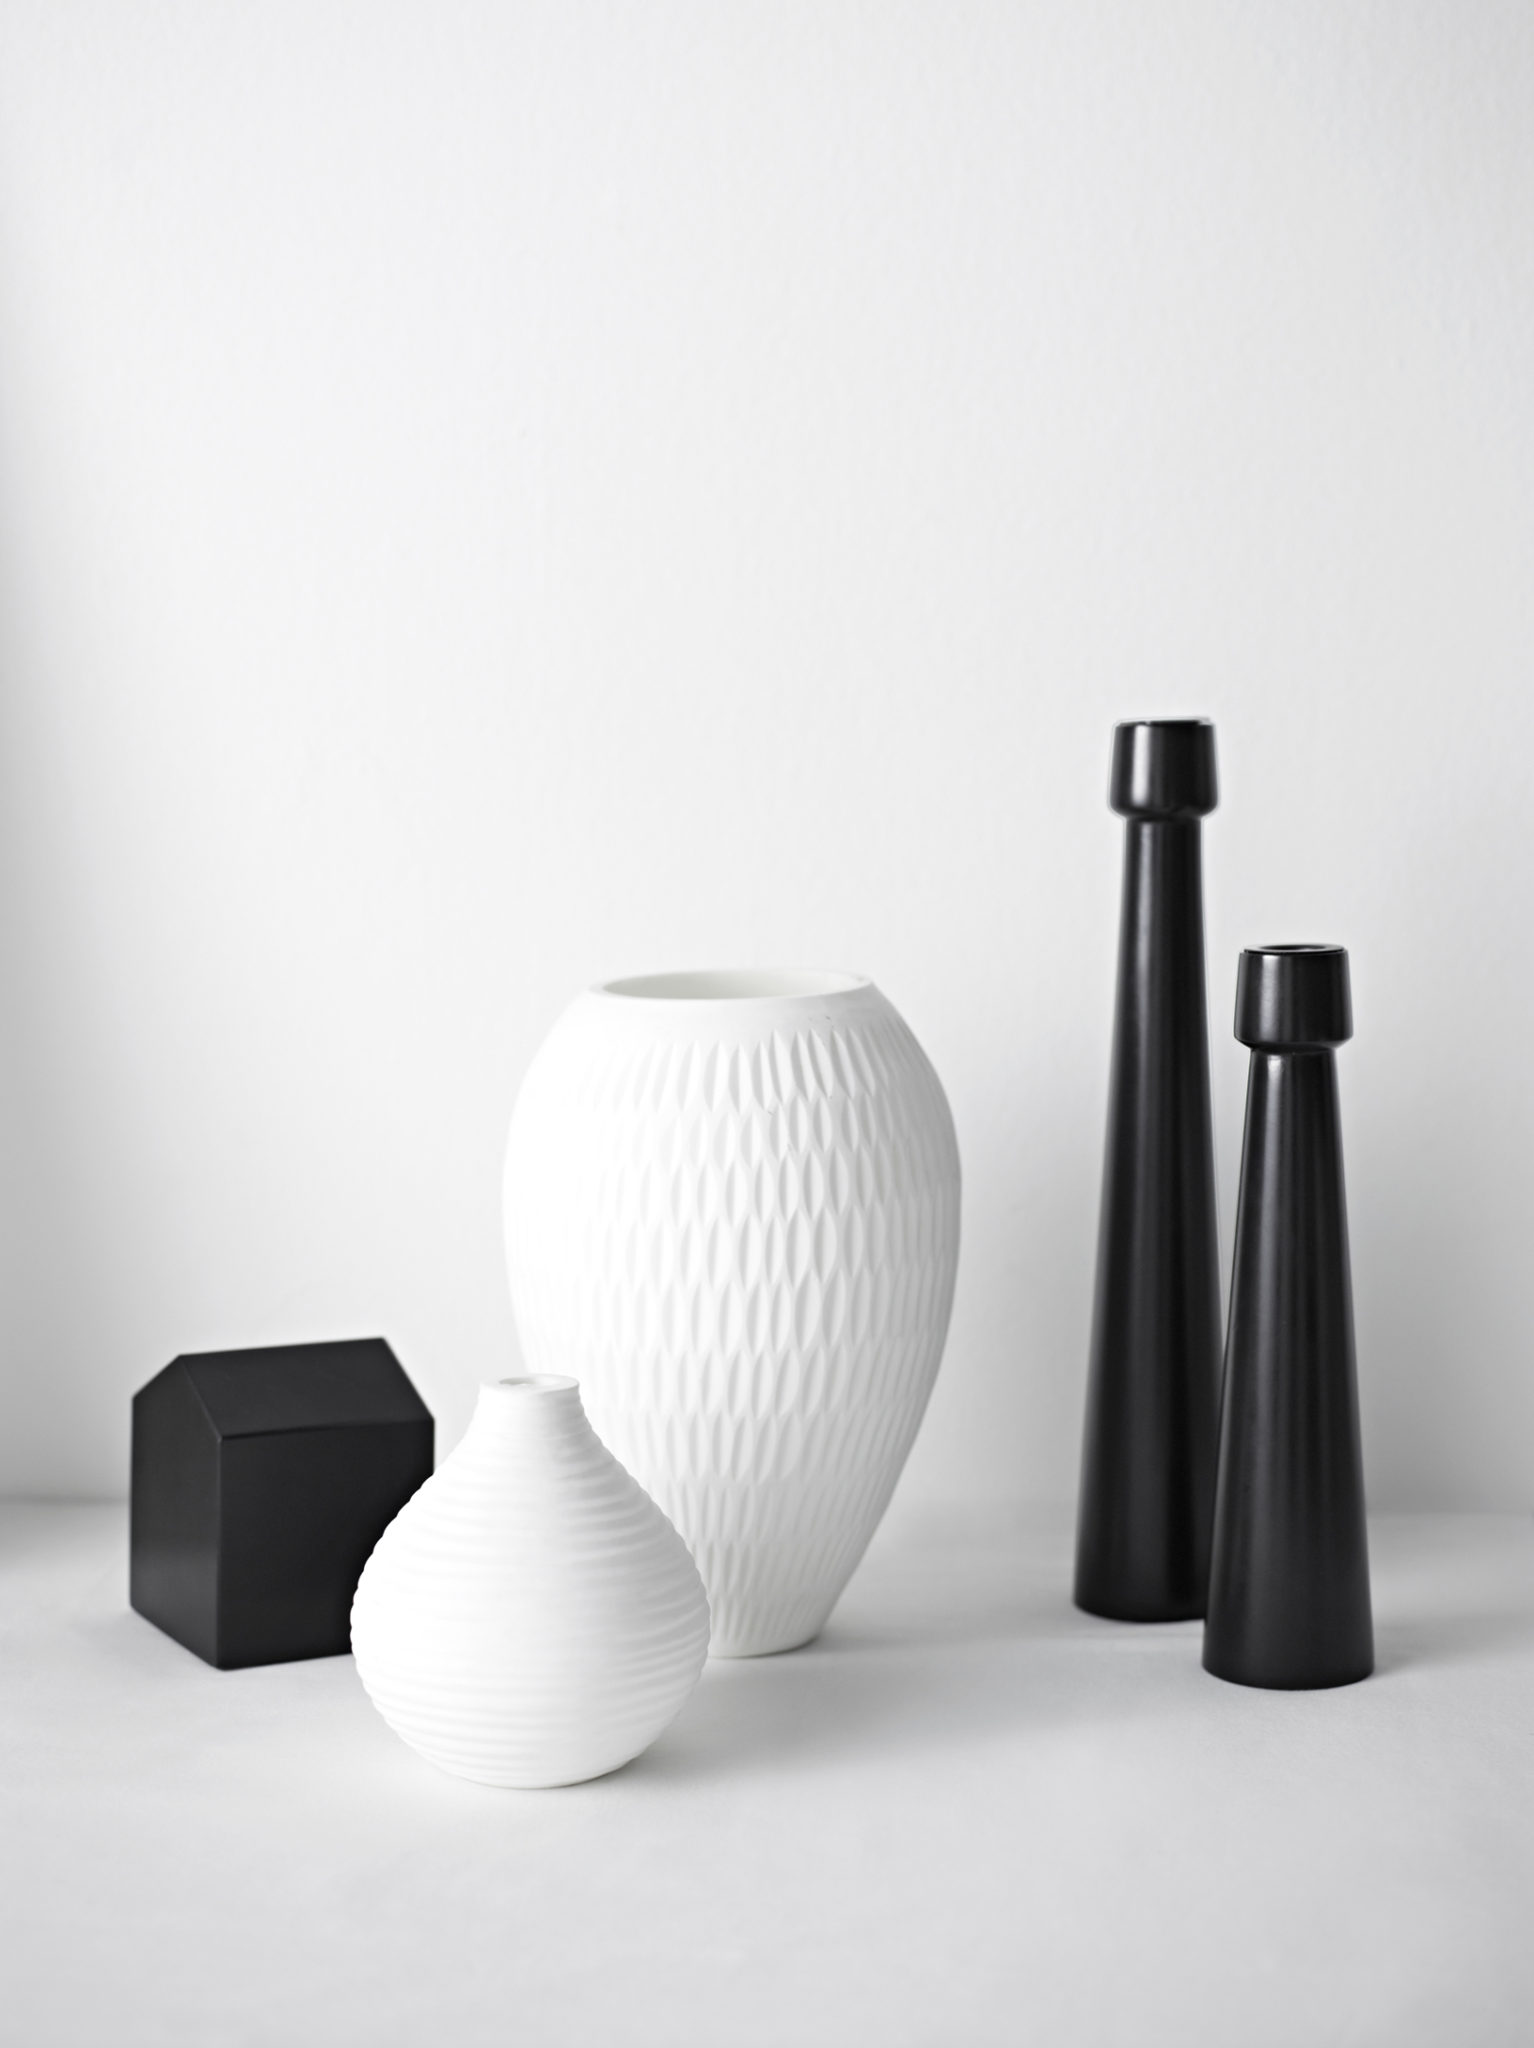 I love the texture of the white vessels paired with the high gloss of the black candlesticks